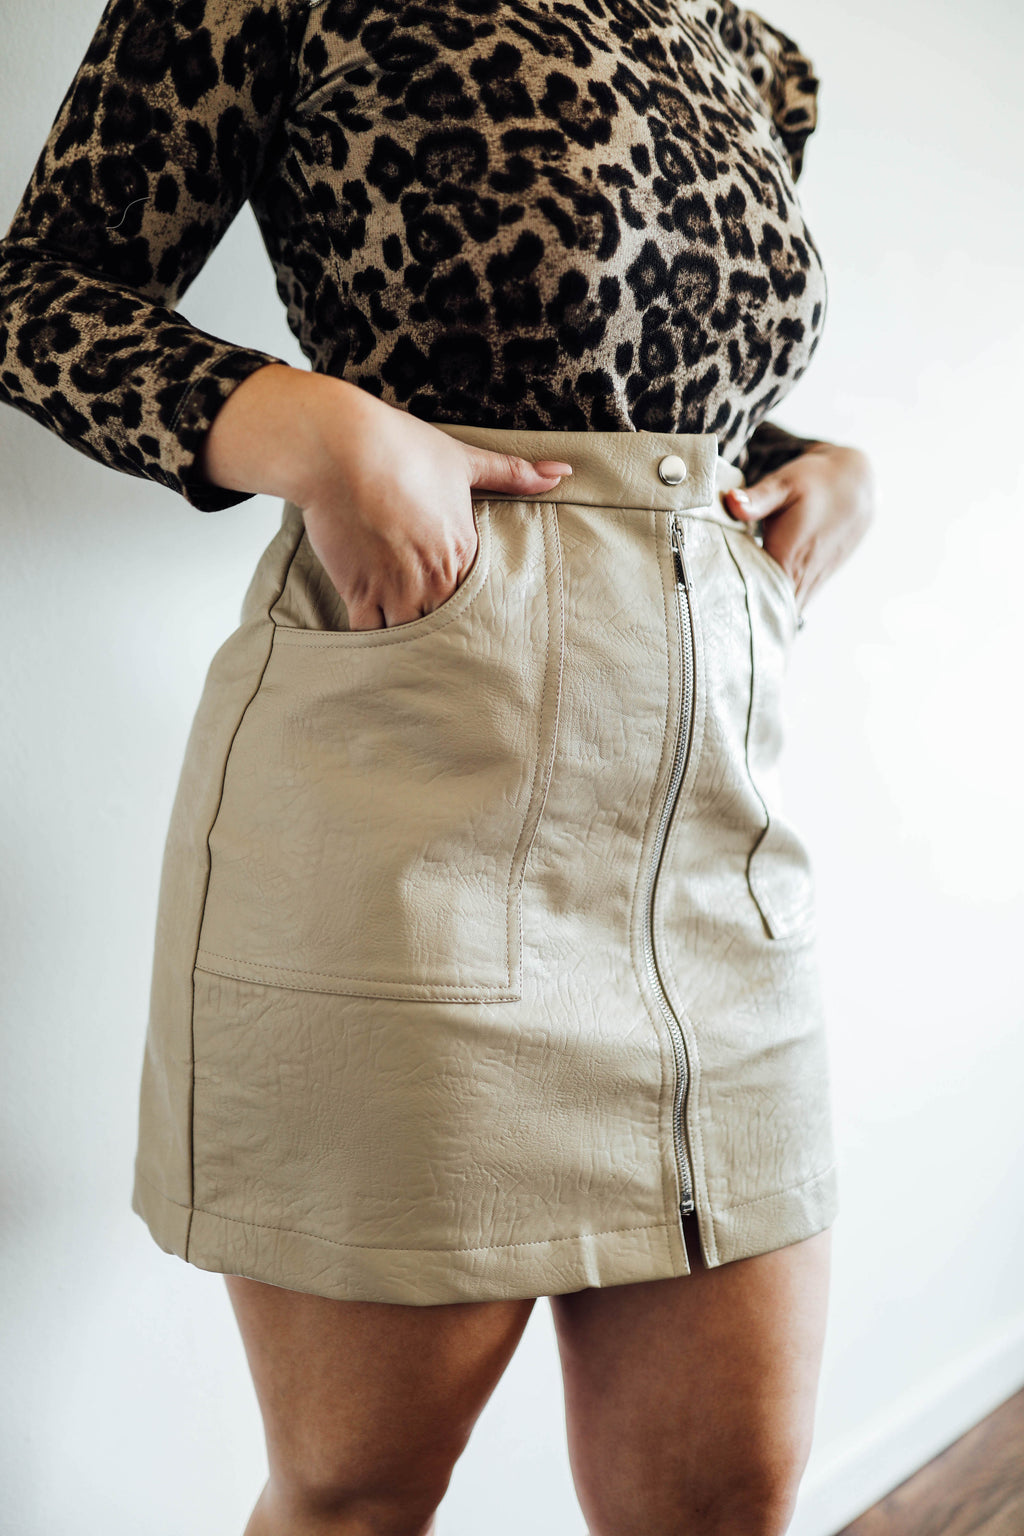 Mila Tan Leather Zip Up Skirt